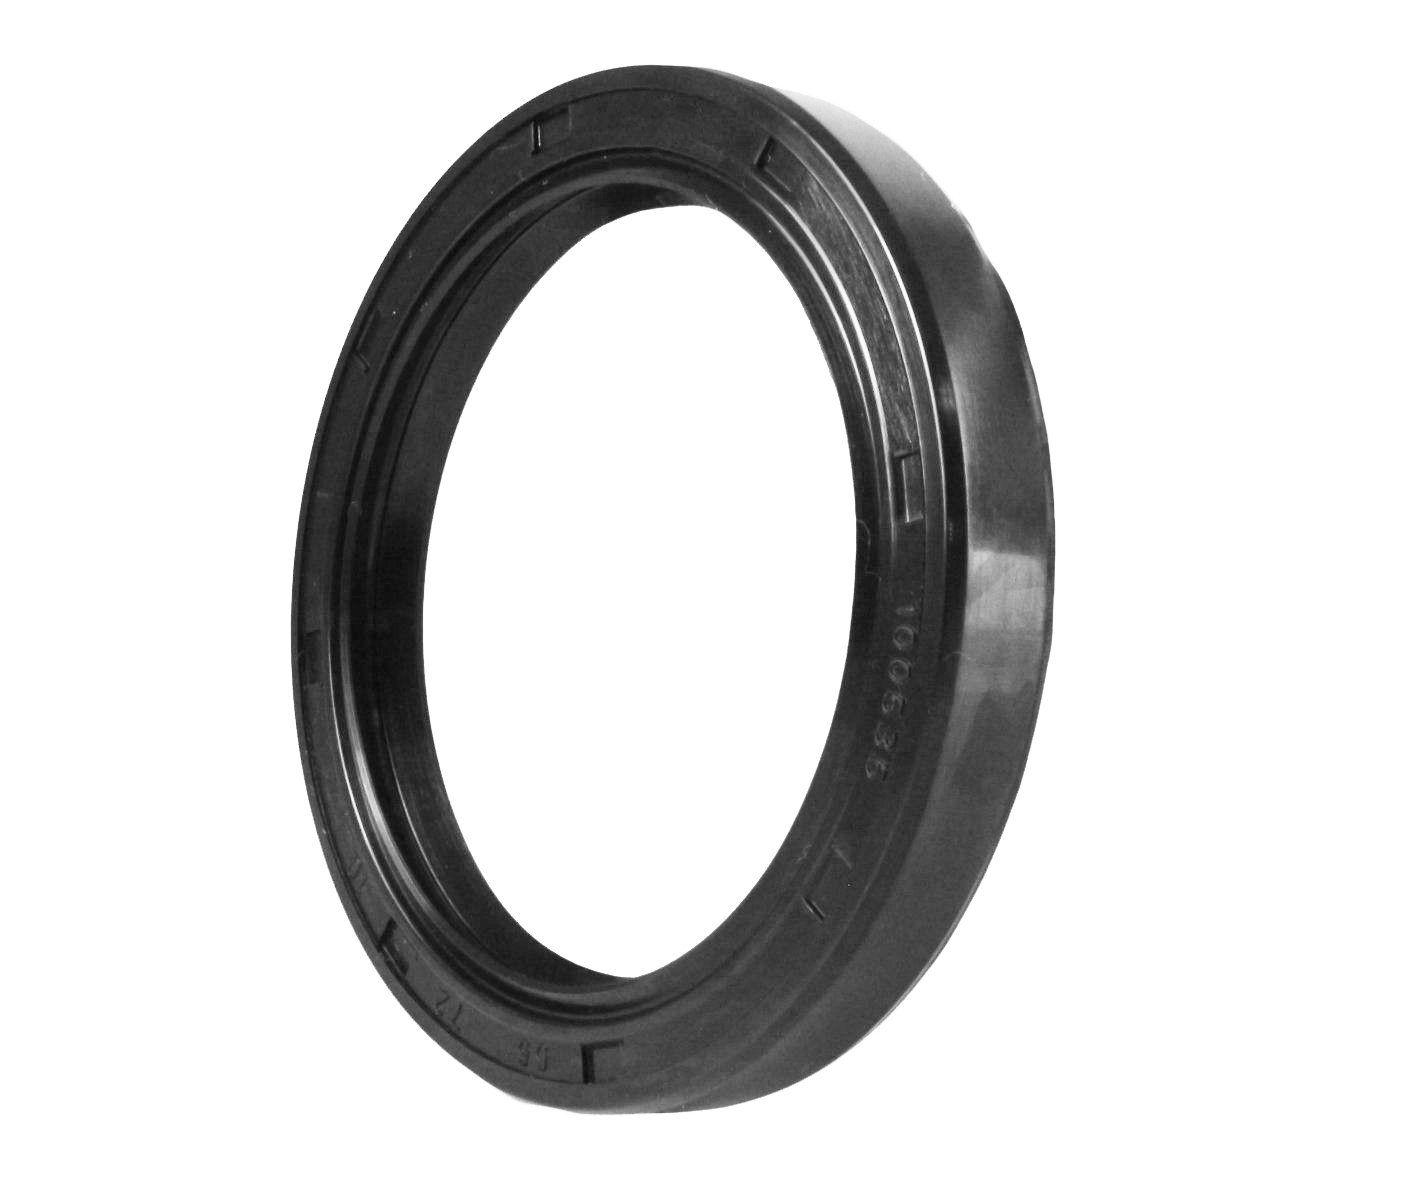 Oil Seal and Grease Seal TC 55X72X10 Rubber Double Lip with Spring 55mmX72mmX10mm (10 Pieces)